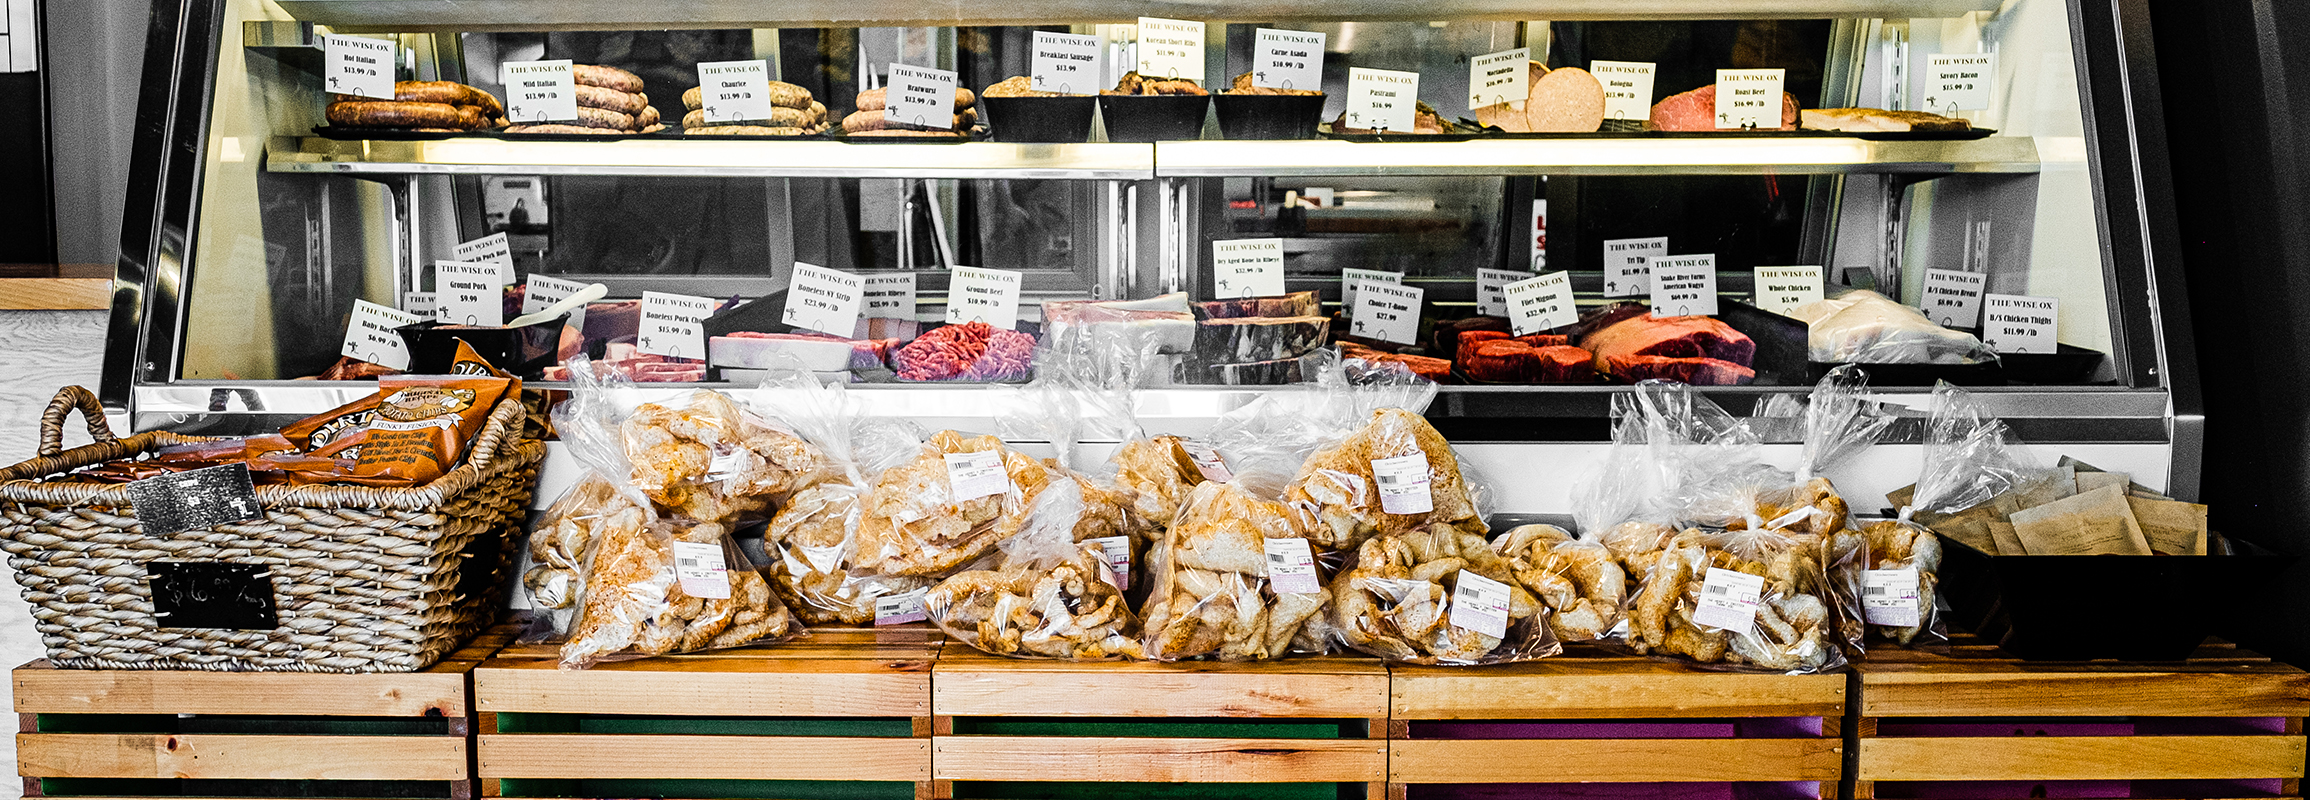 Deli case at the Wise Ox displaying various meats